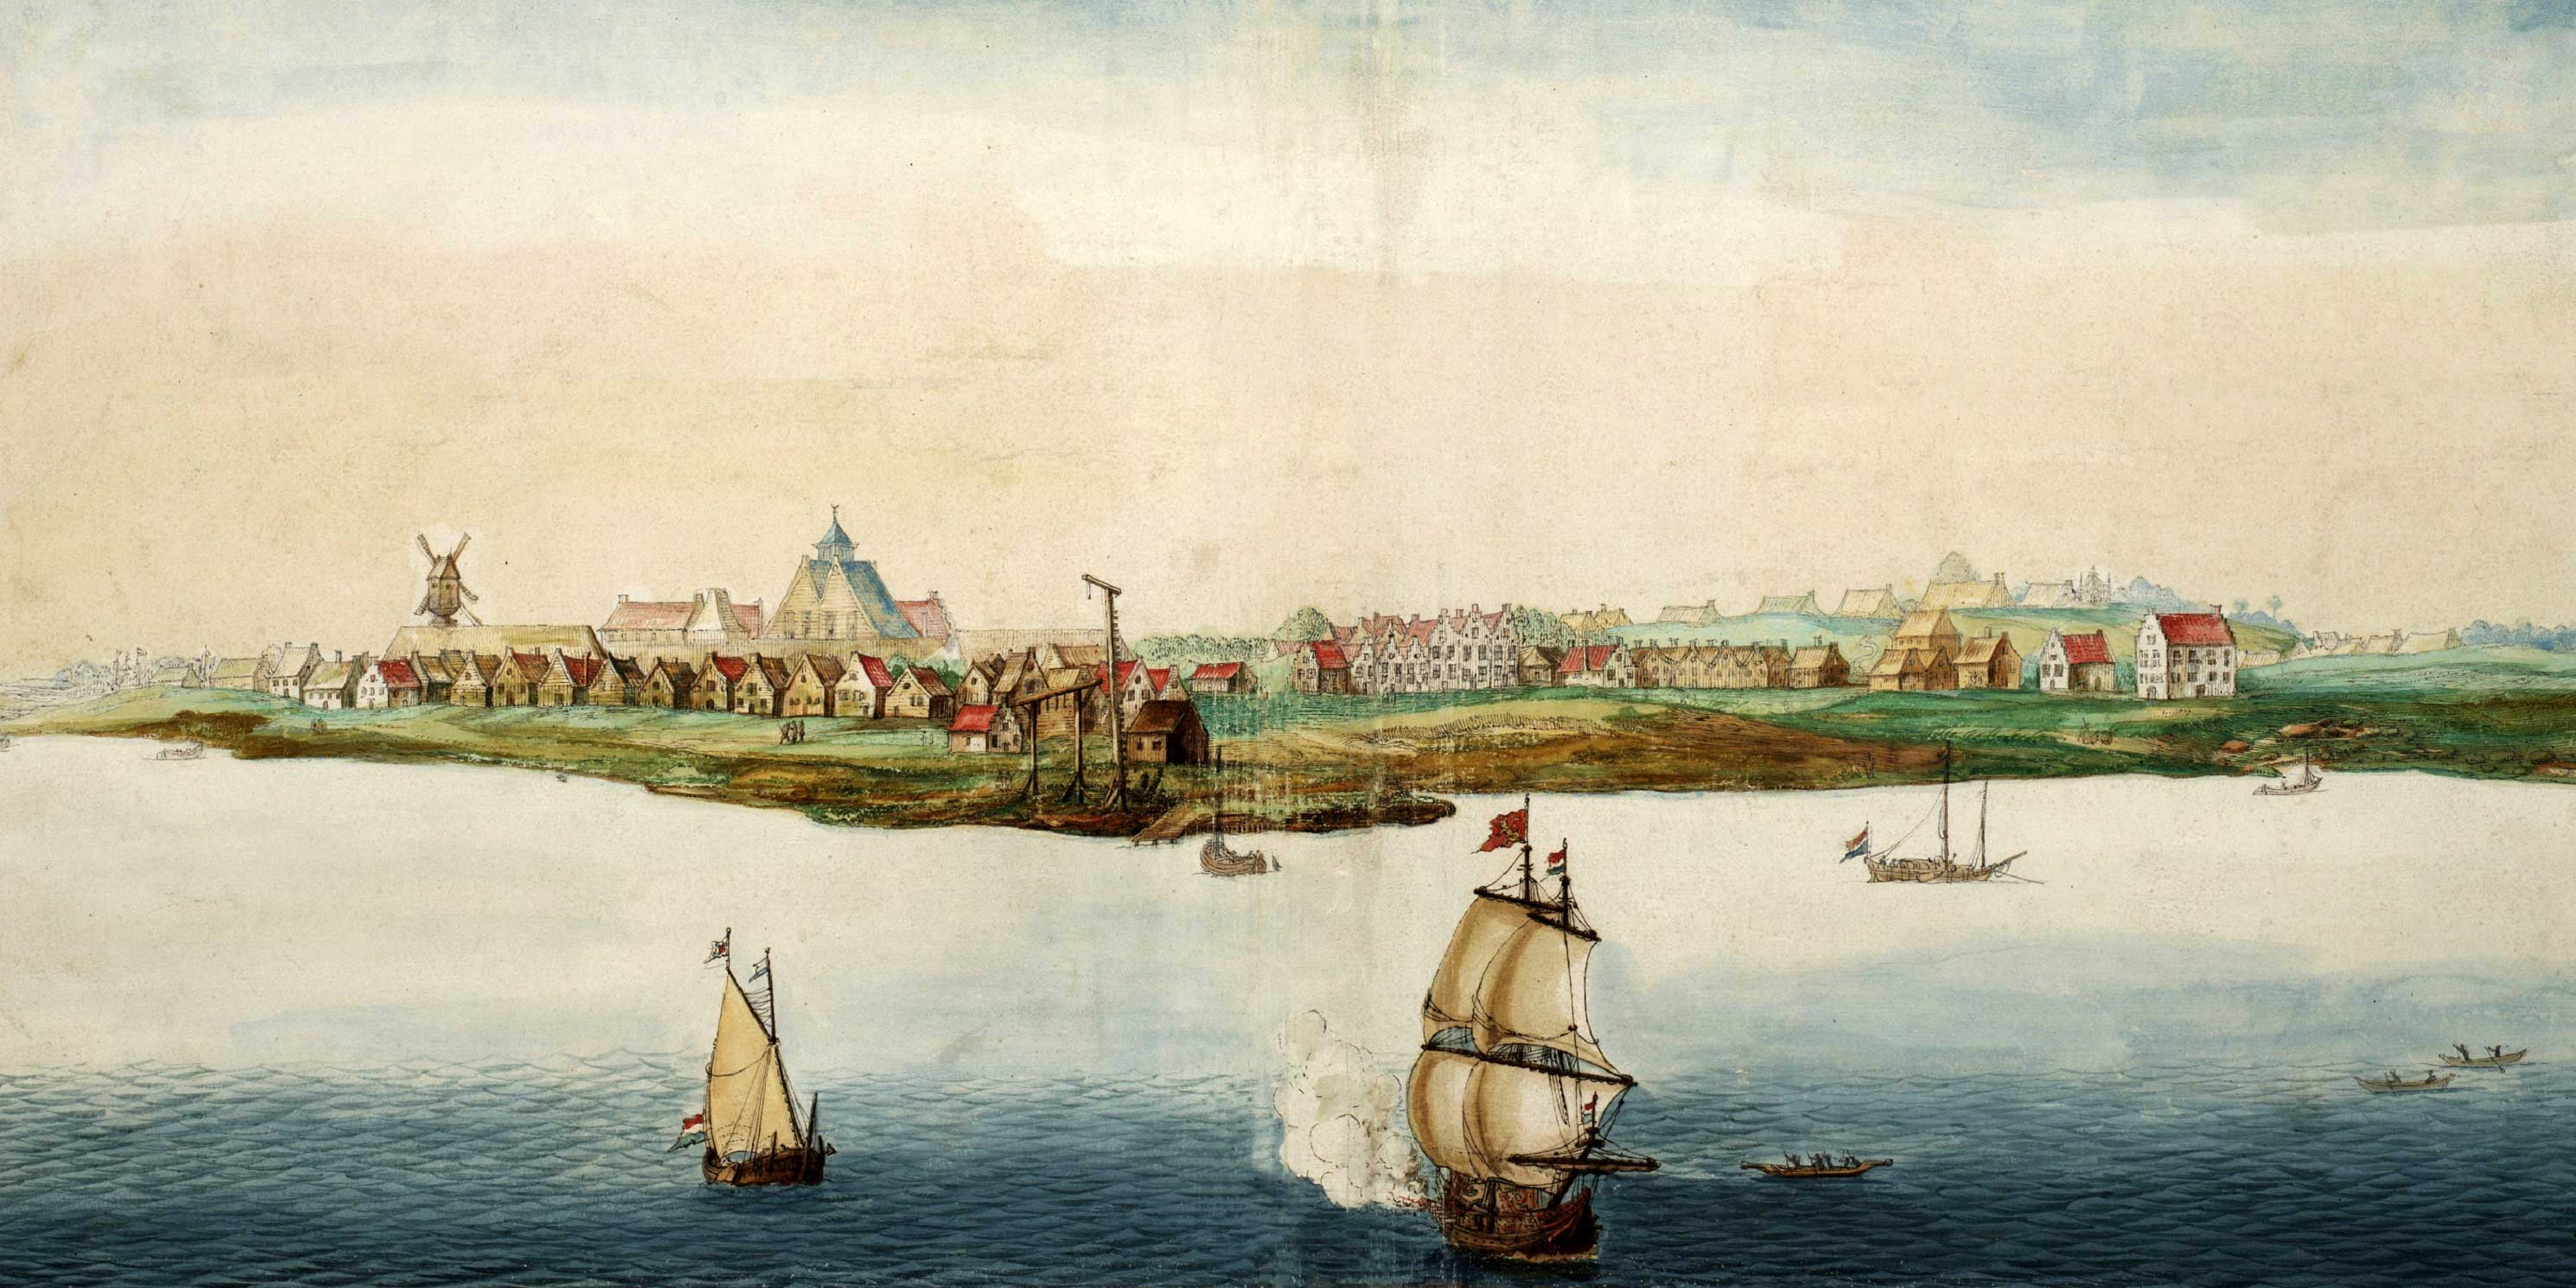 painting of sailing ships along the New Amsterdam coastline